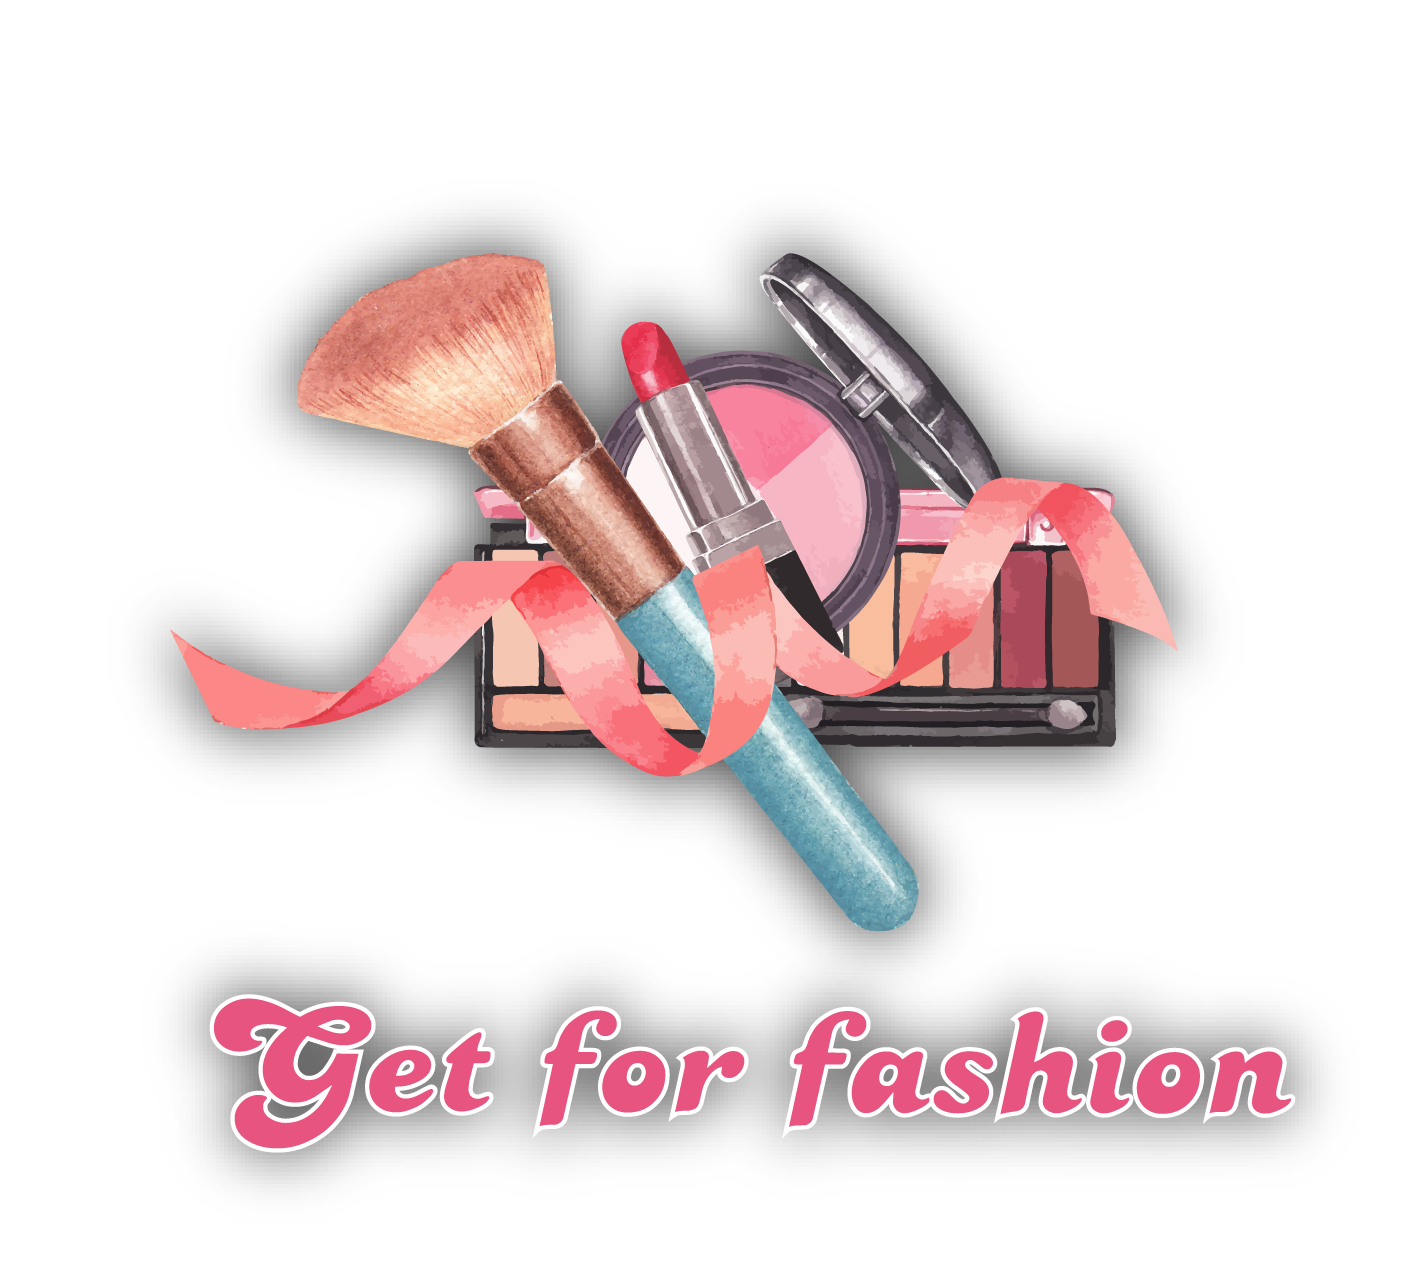 Get For Fashion